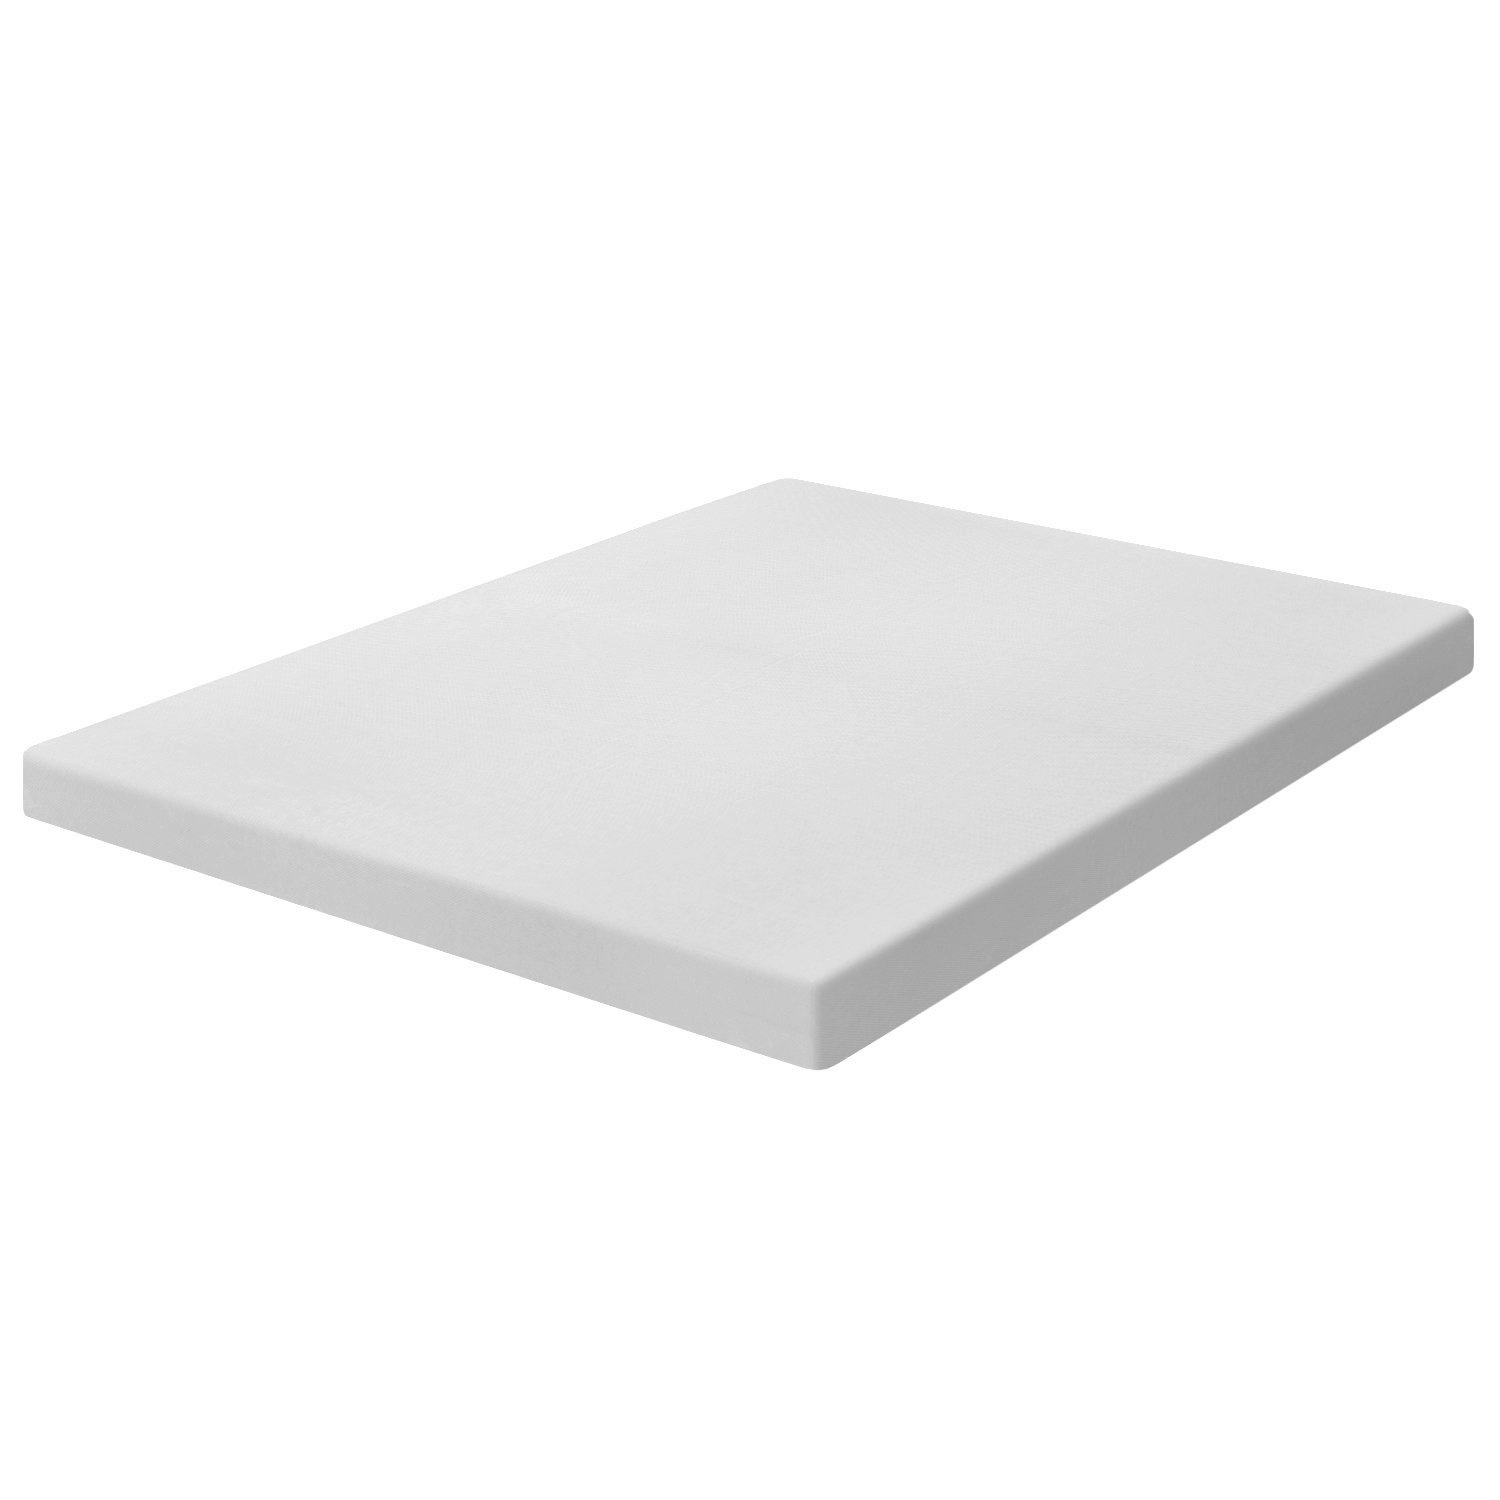 Best Price Mattress 4 Inch Memory Foam Mattress Topper Queen Ebay